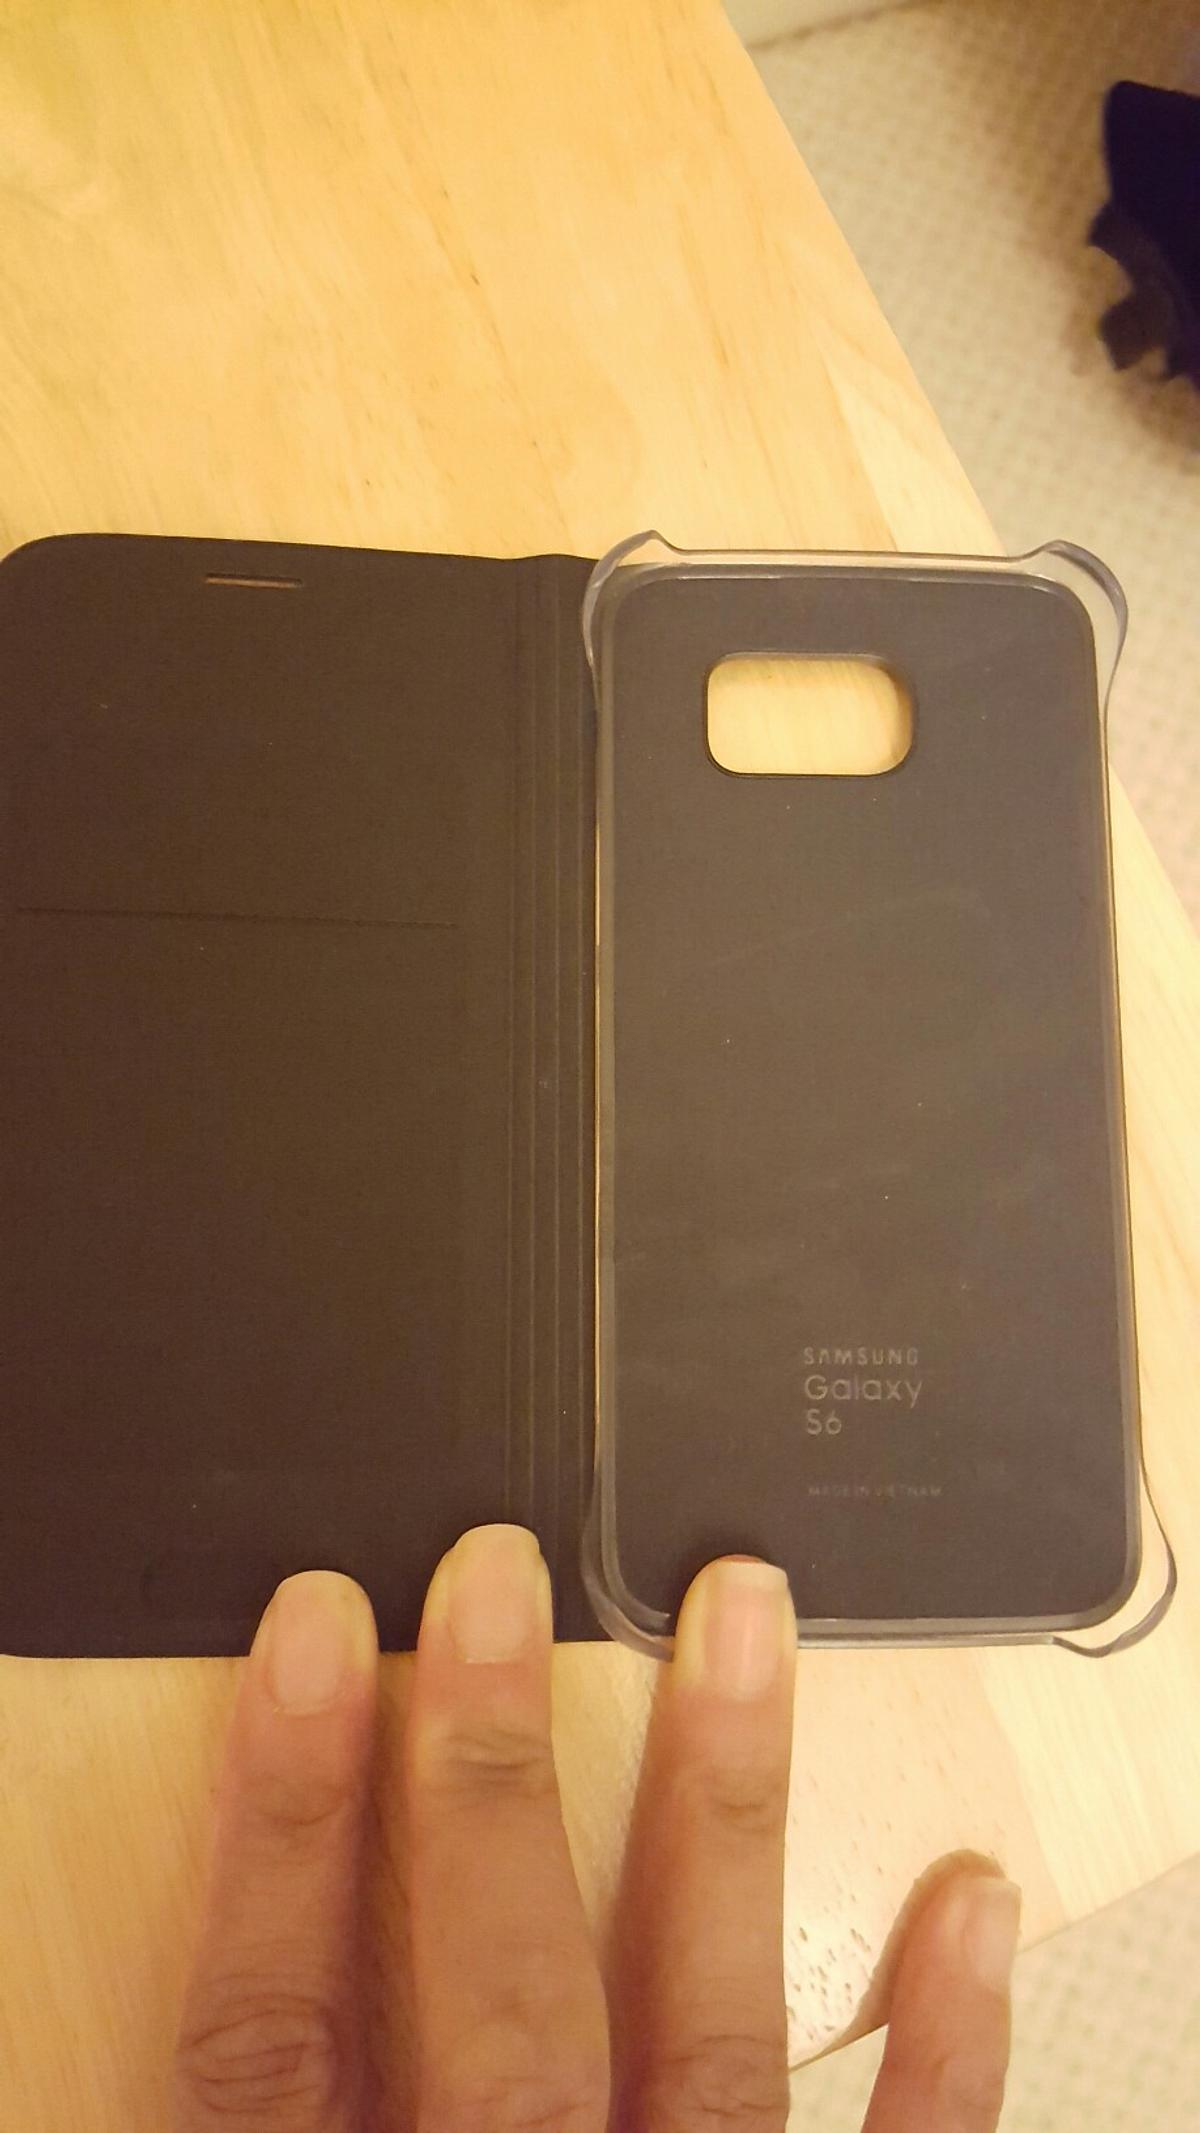 online store 5bdc1 2aae7 £5 OBO Samsung S6 Leather Phone Case